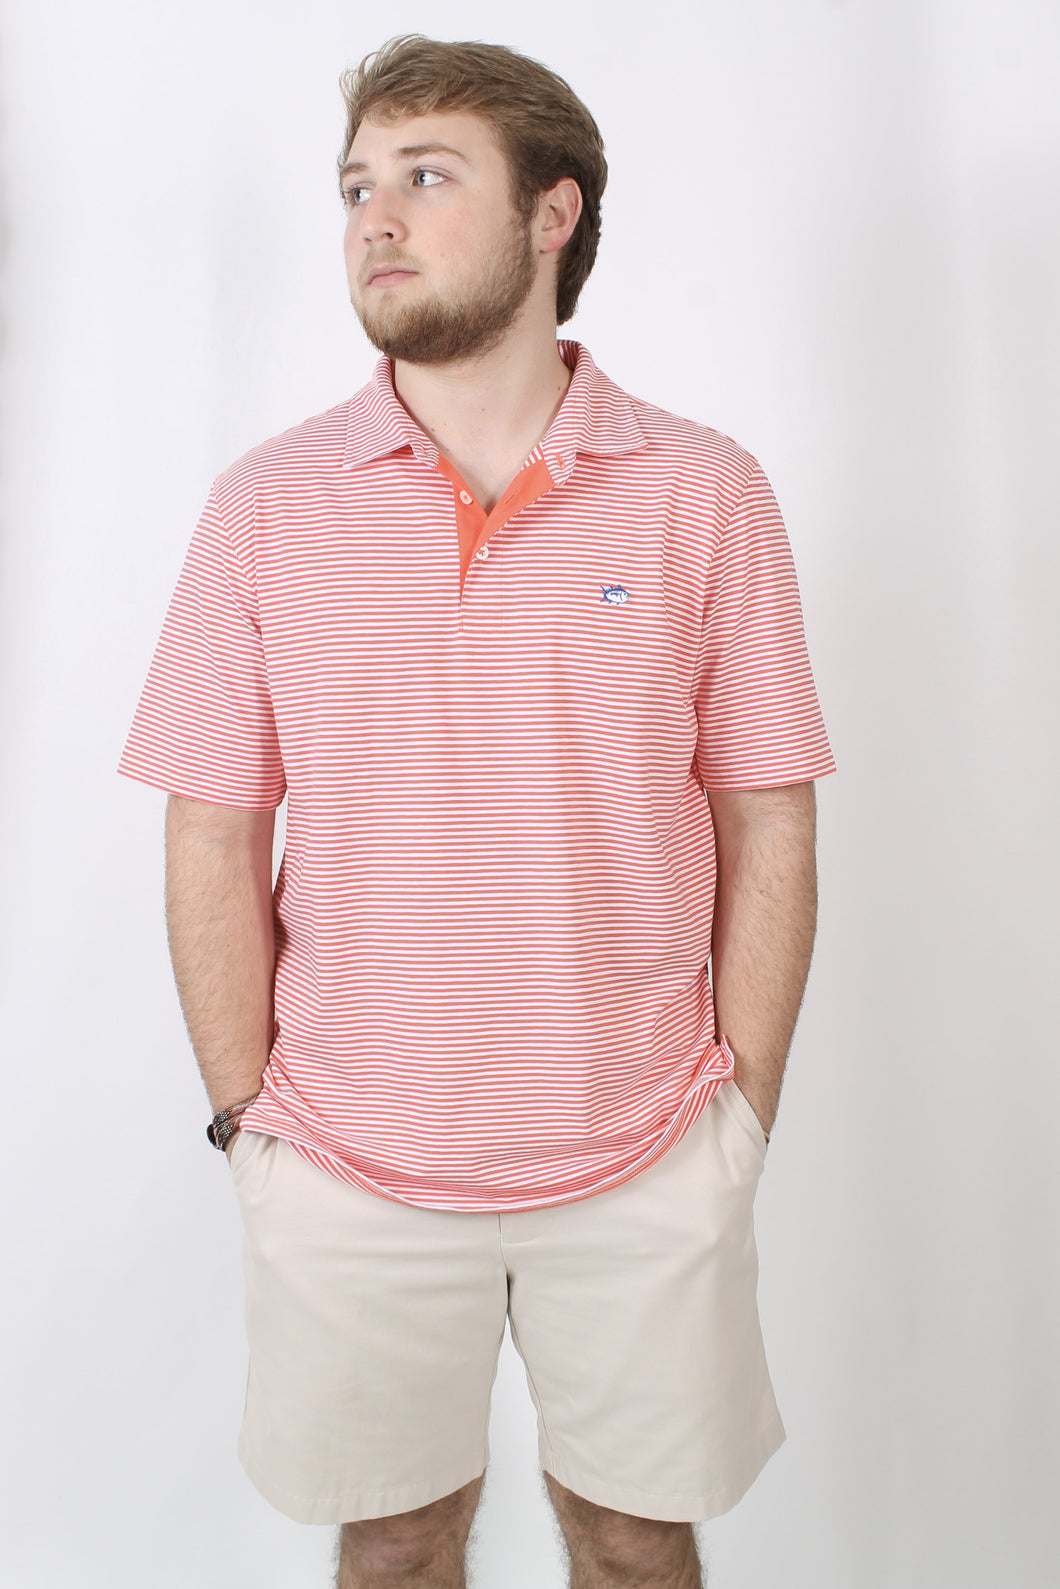 Hot Coral Polo- Southern Tide Channel Marker Striped Polo Front